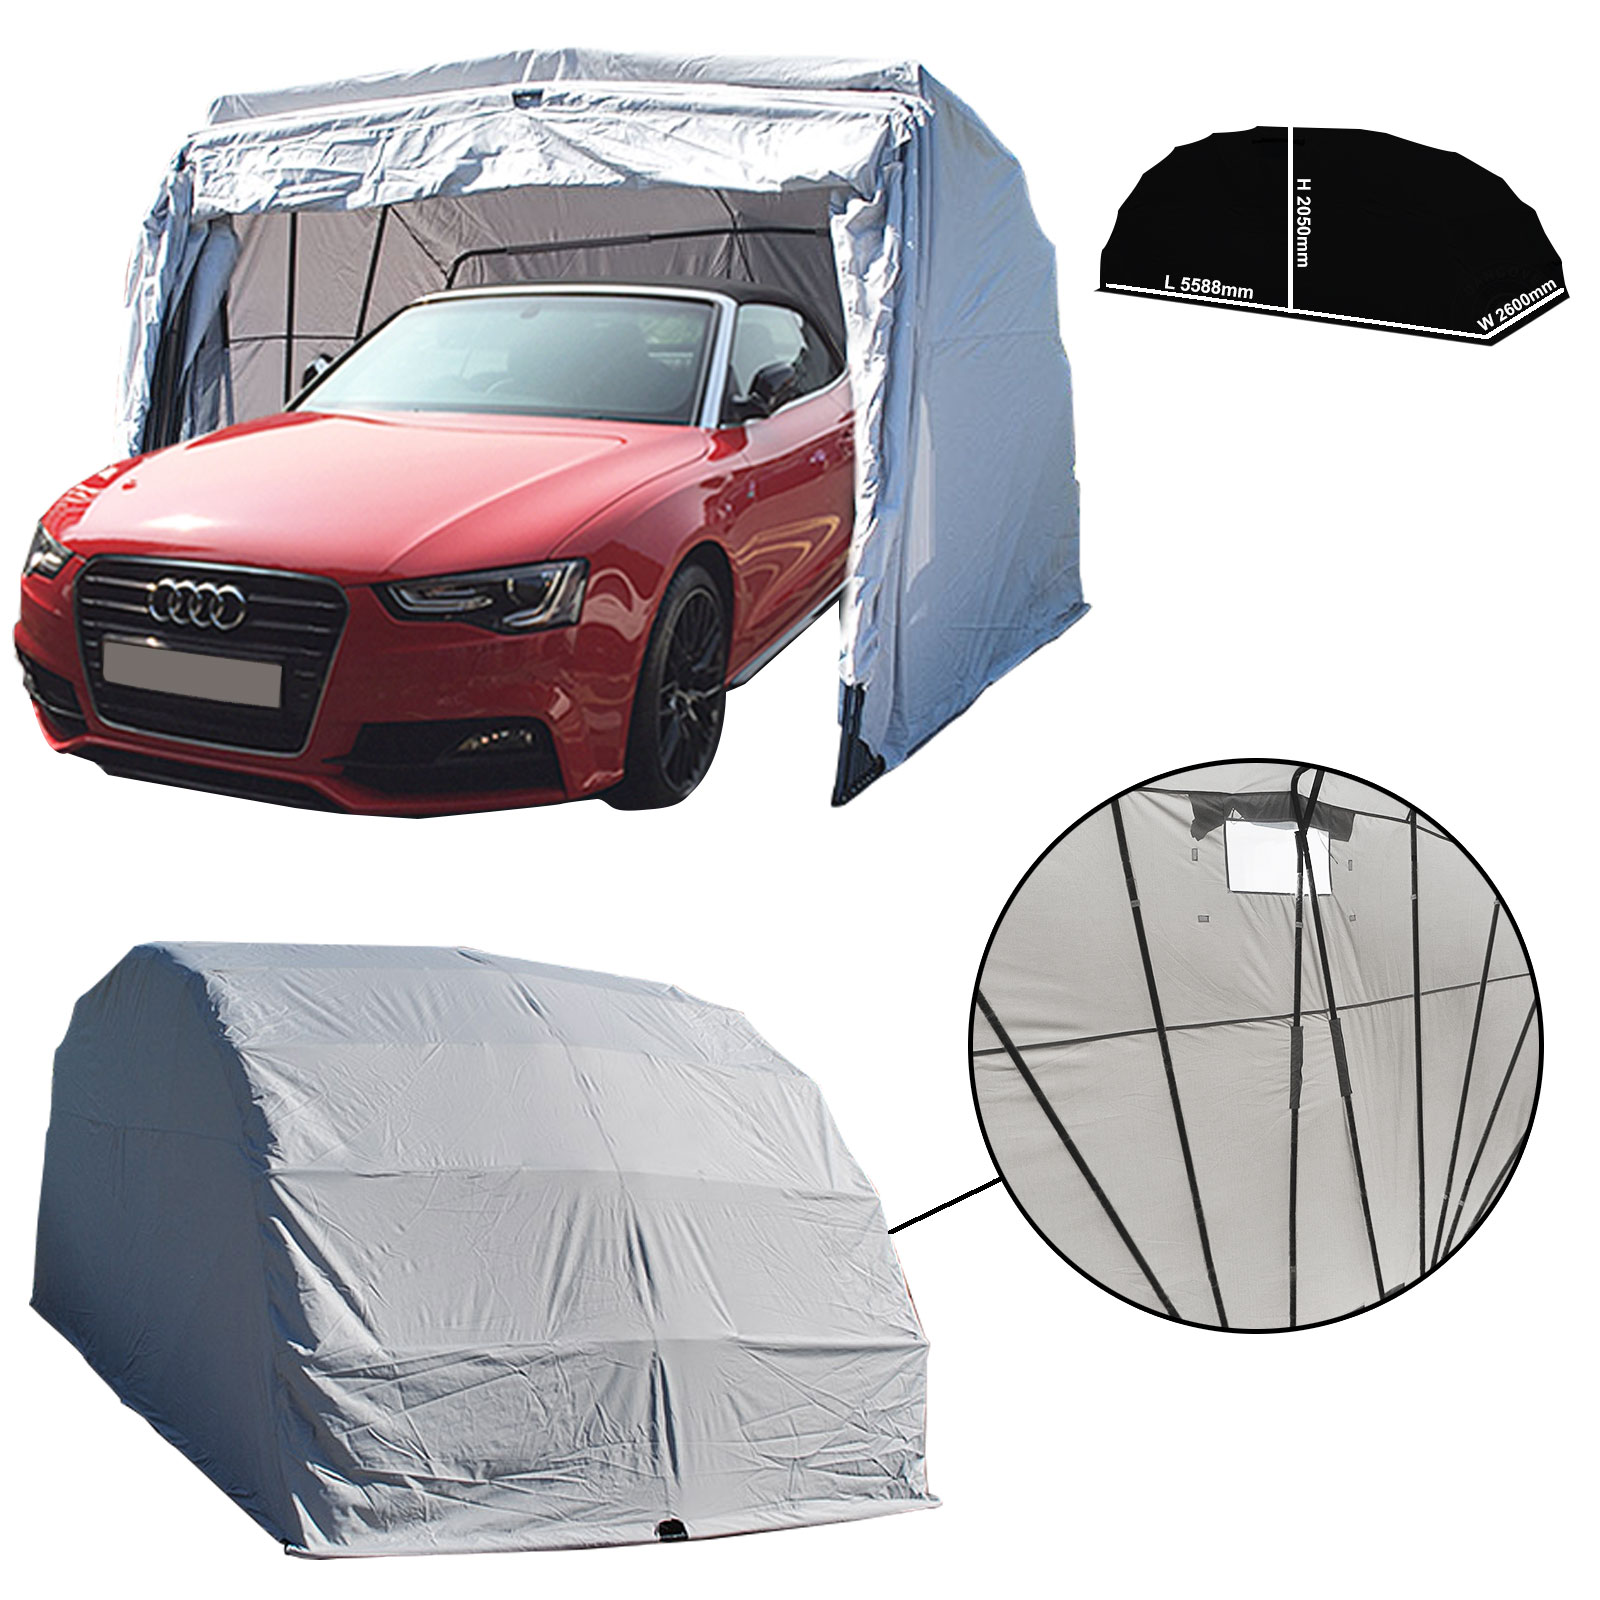 Portable Garage Carport Shelter Folding Canopy L 5588mm x ...